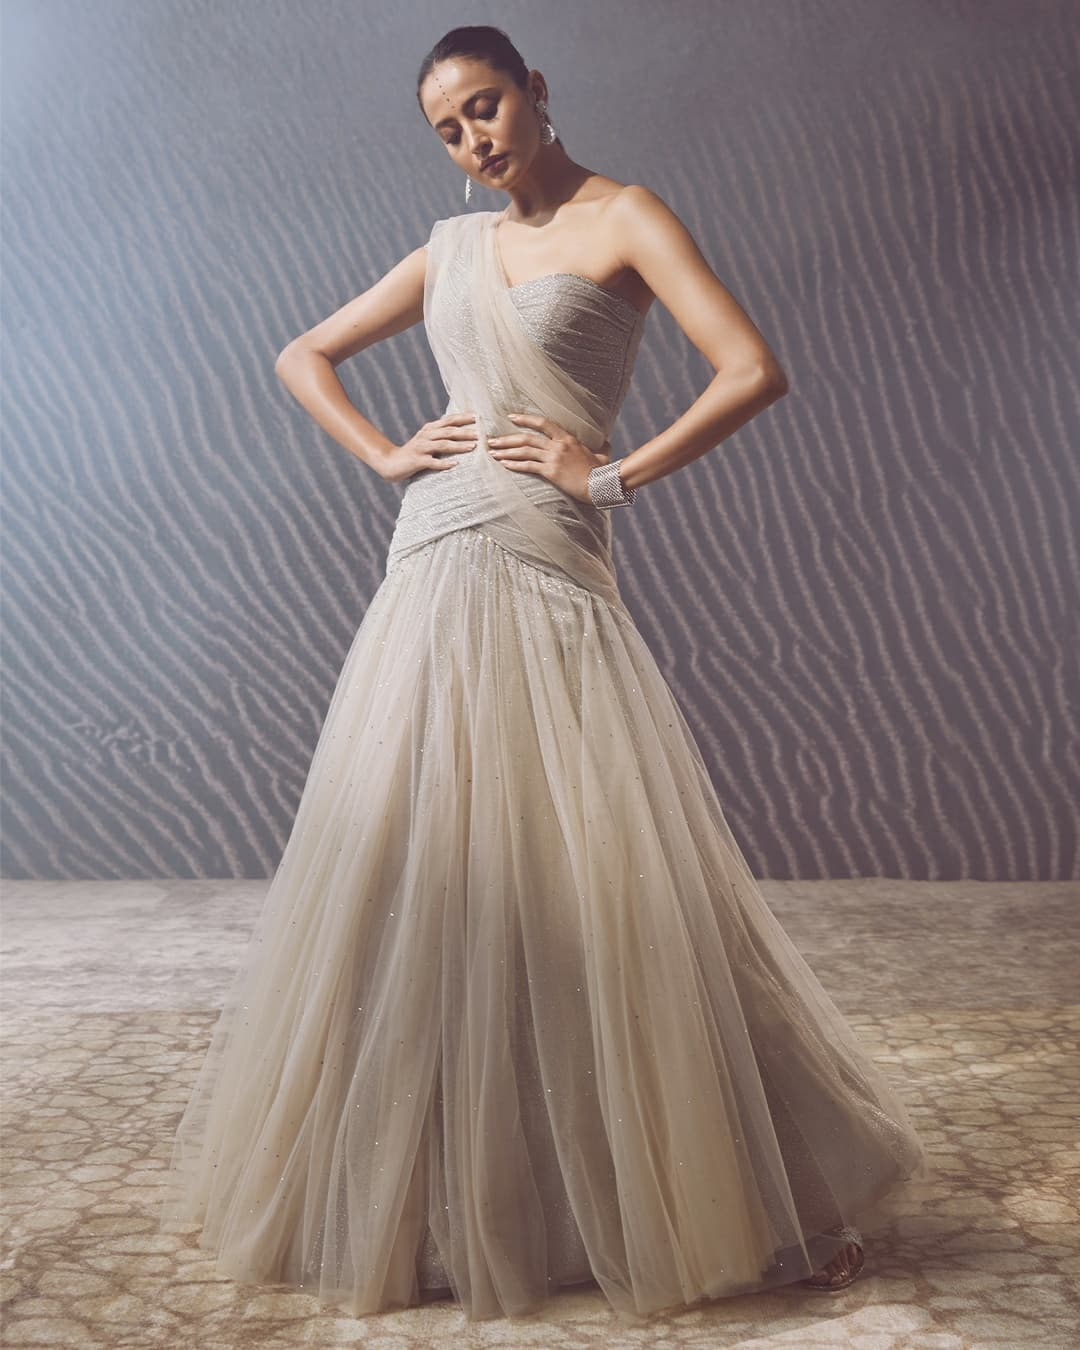 Sonali is seen here wearing foil crinkle and tulle draped grown in the oyster shade. The one shoulder bodice features fluting  and is embellished with crystals all over. The attached jersey and tulle stole extends from the shoulder in the back and can be accessorized with a wide diamond bracelet and earrings. 2021-10-22